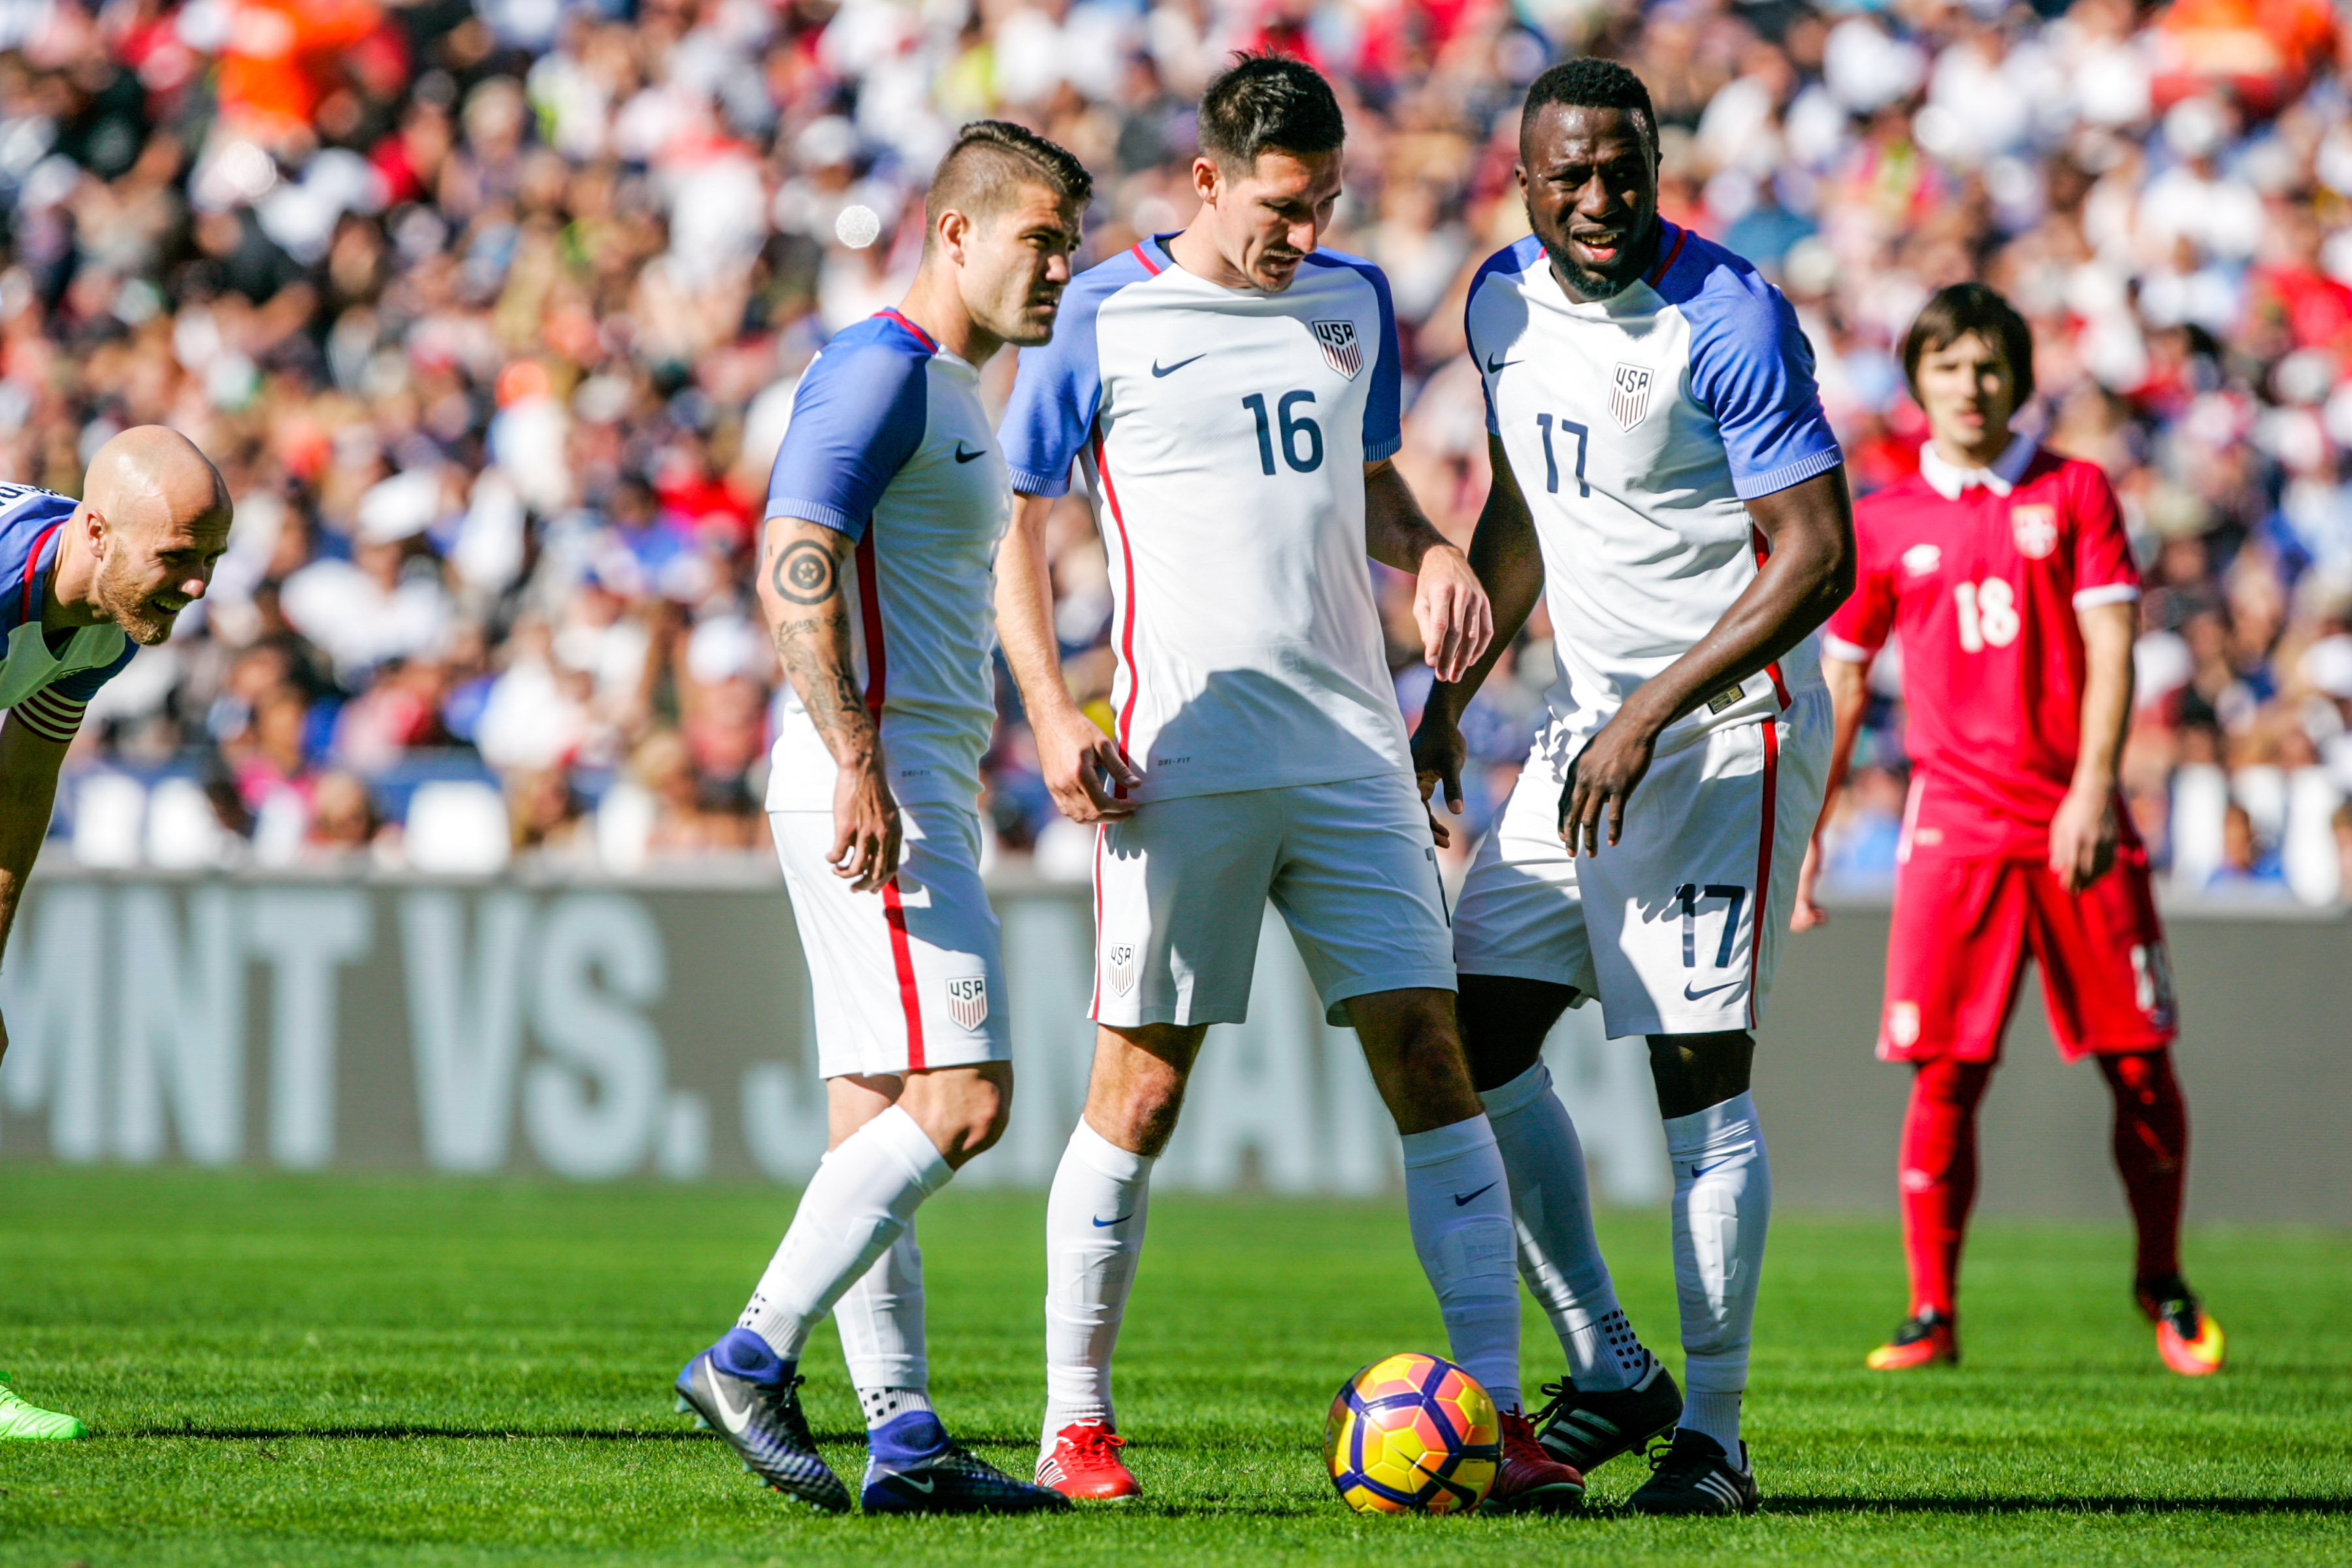 Will the U.S. Men's National Team qualify for World Cup?